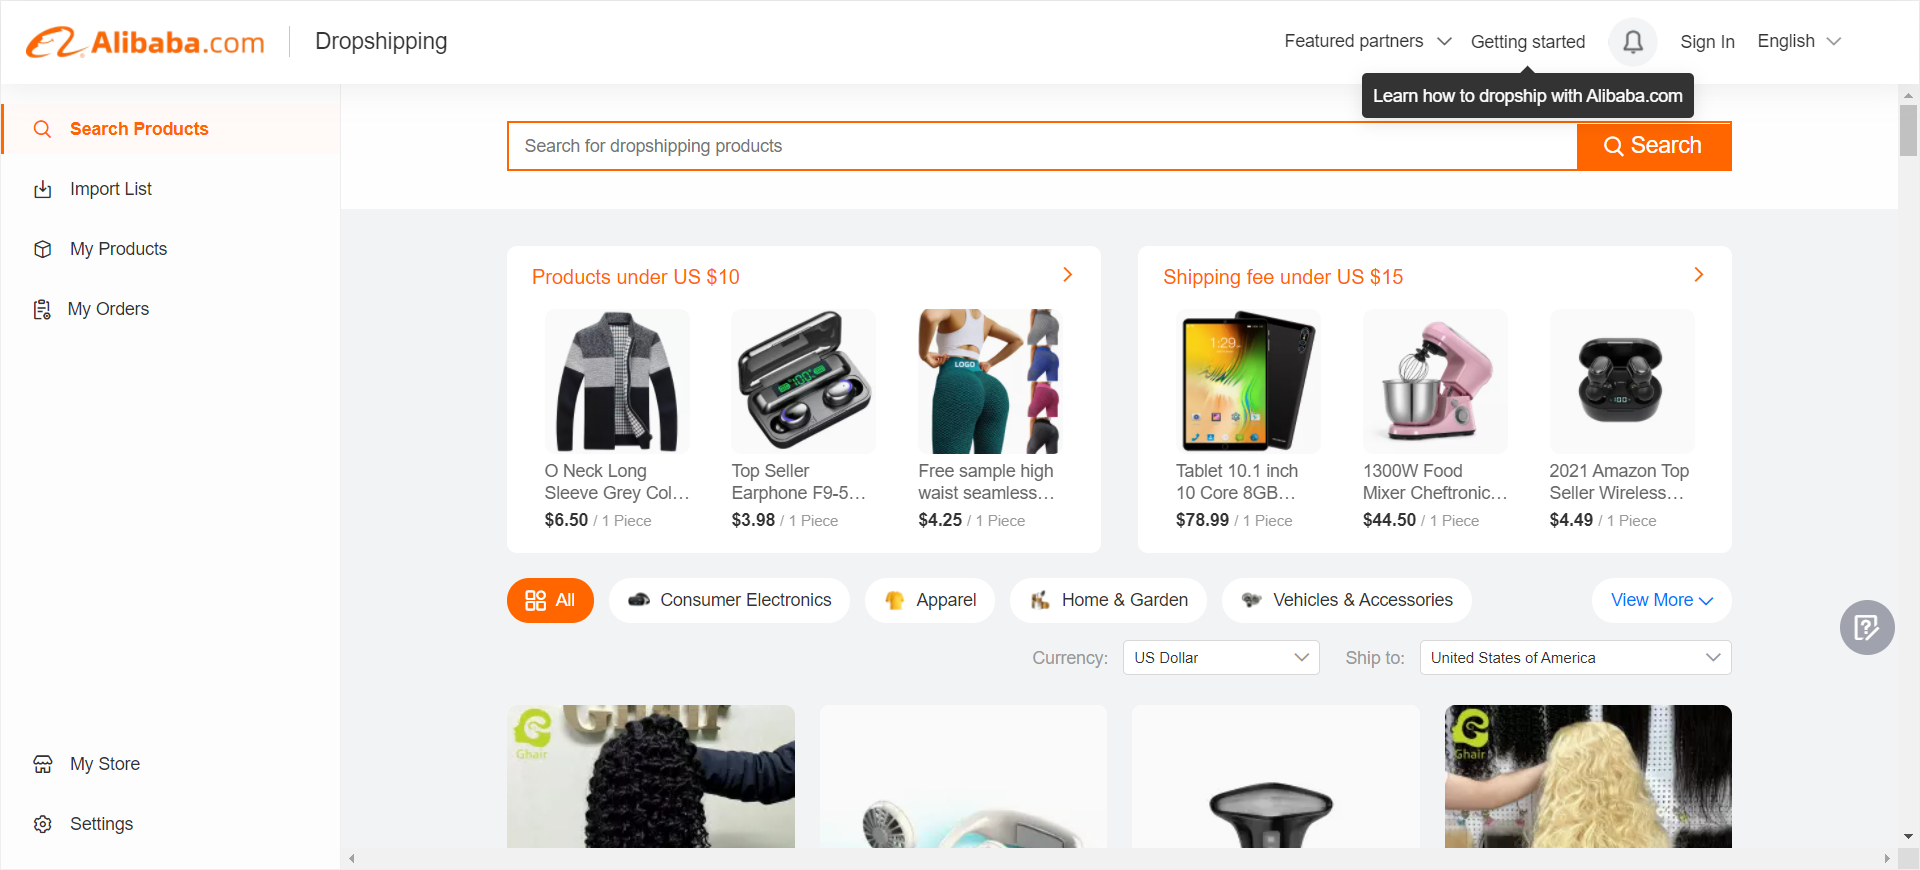 Dropshipping on Alibaba.com presents a wide range of popular categori